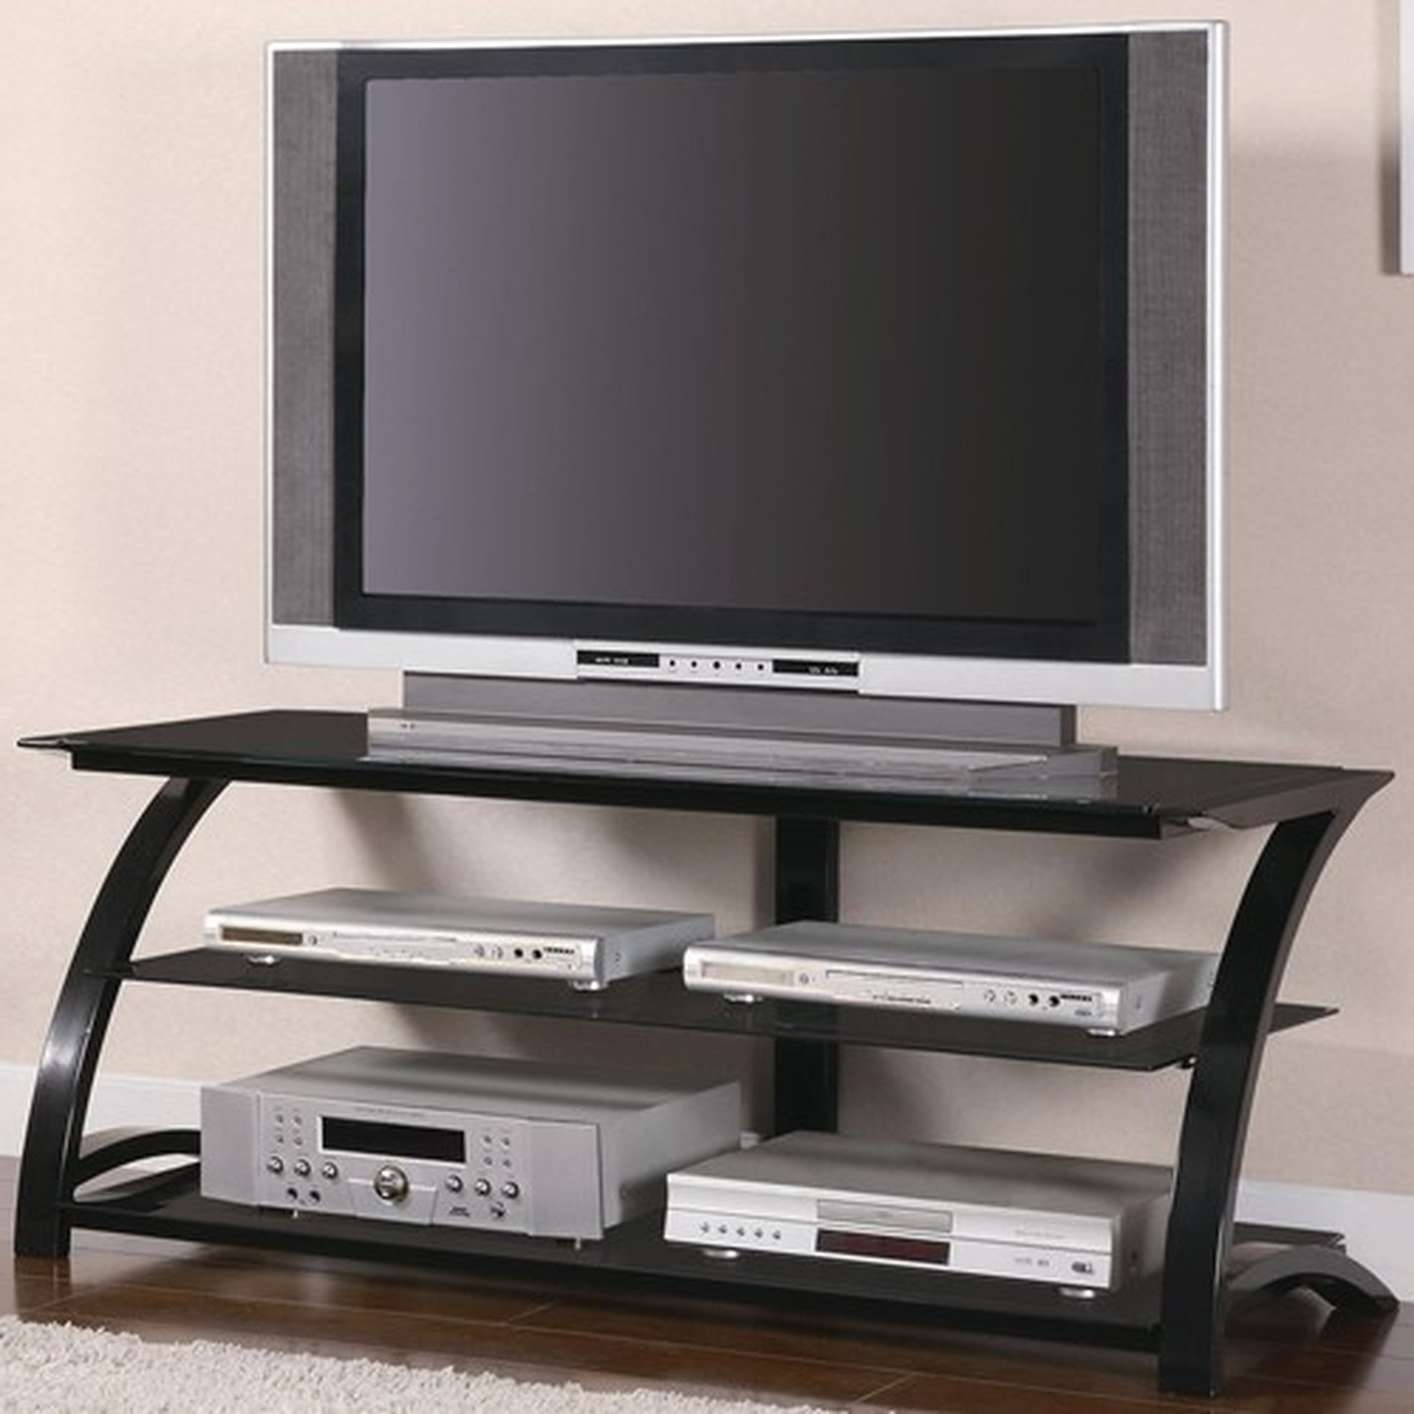 Black Glass Tv Stand – Steal A Sofa Furniture Outlet Los Angeles Ca Regarding Glass Tv Stands (View 13 of 15)